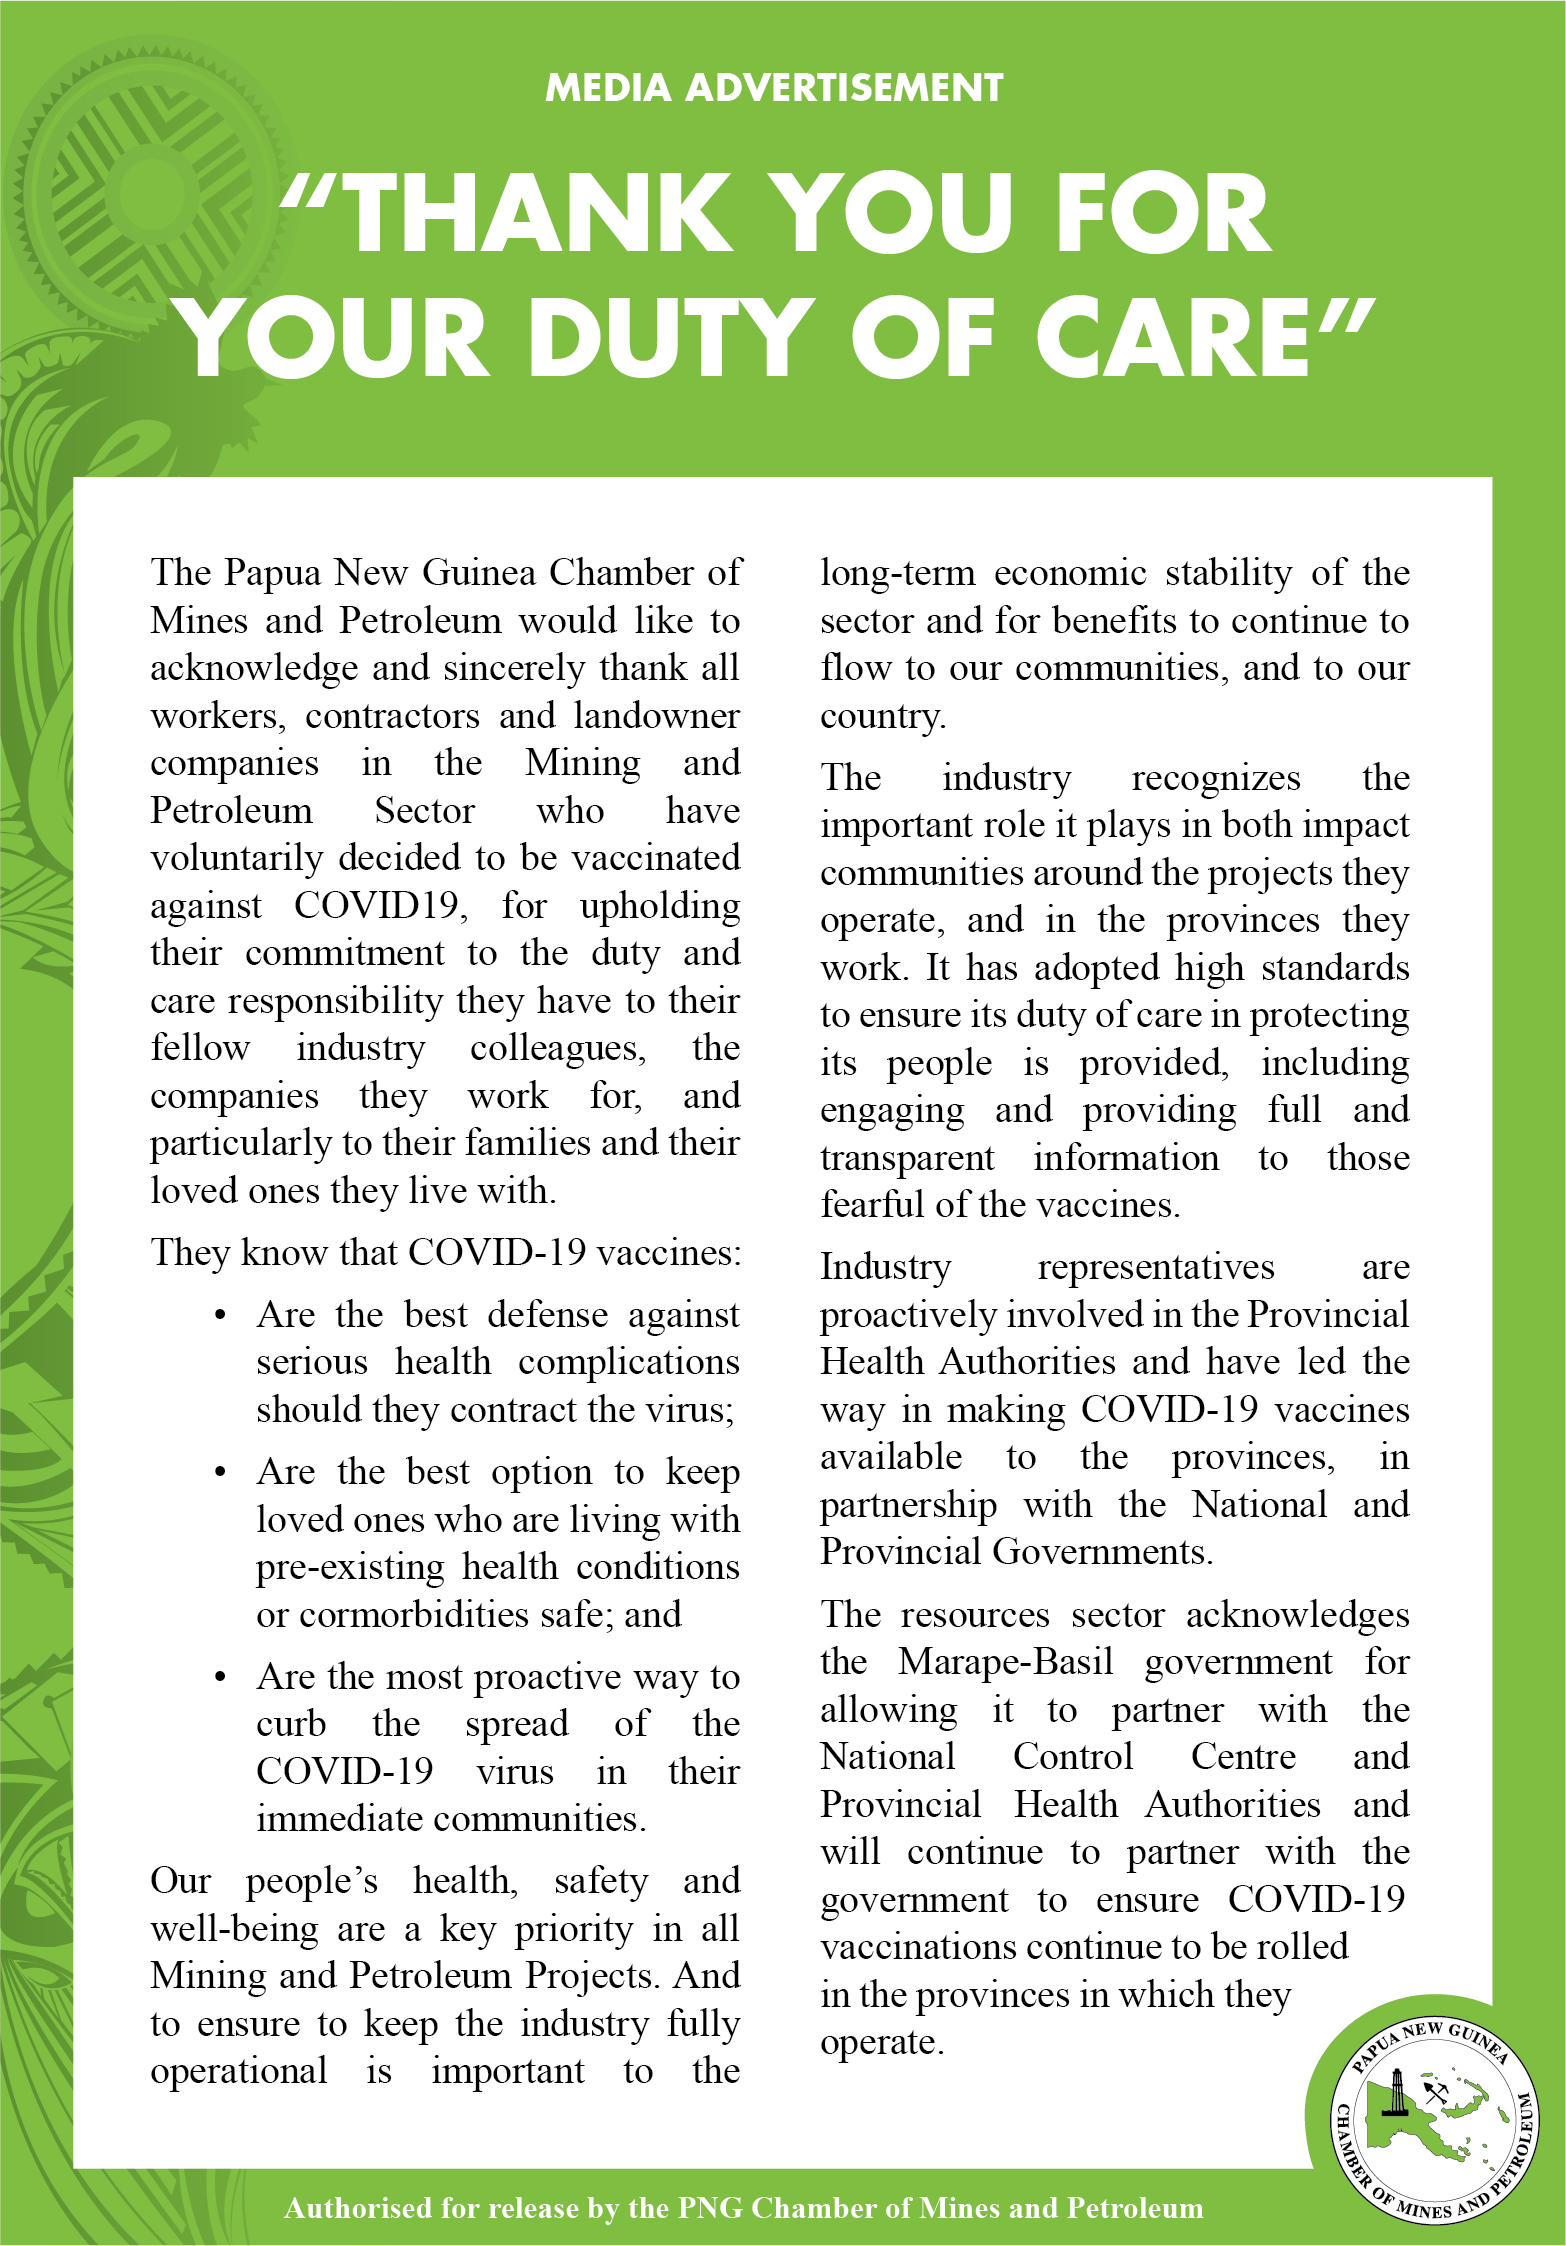 Chamber Acknowledges Duty of Care